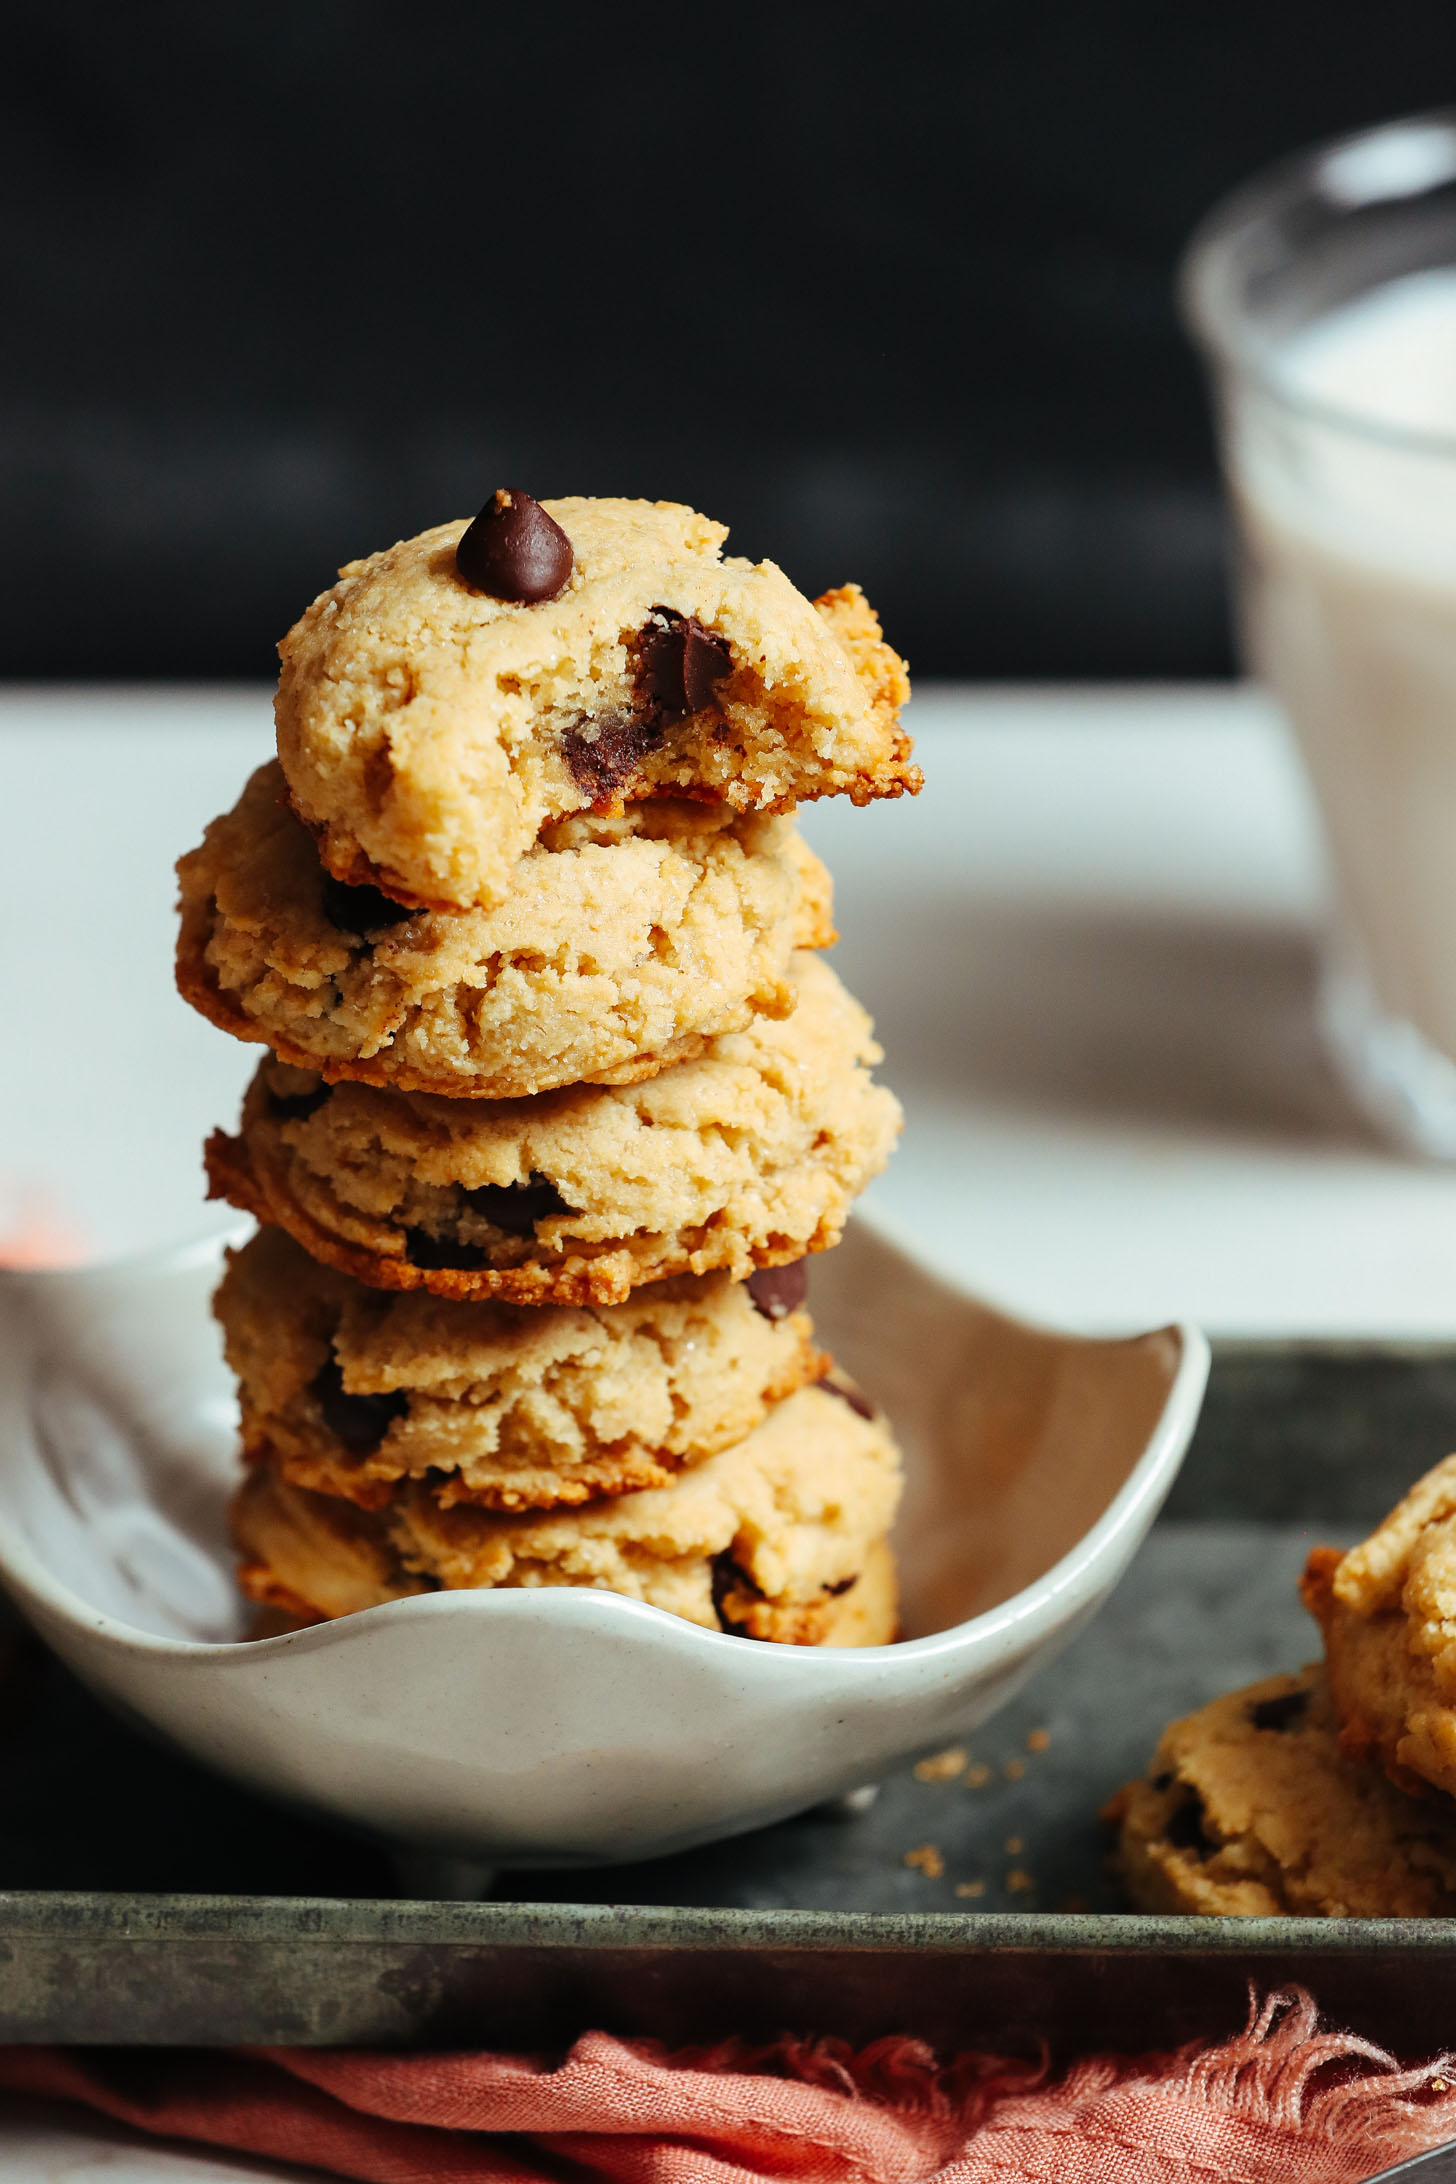 Small bowl with a stack of gluten-free vegan chocolate chip cookies